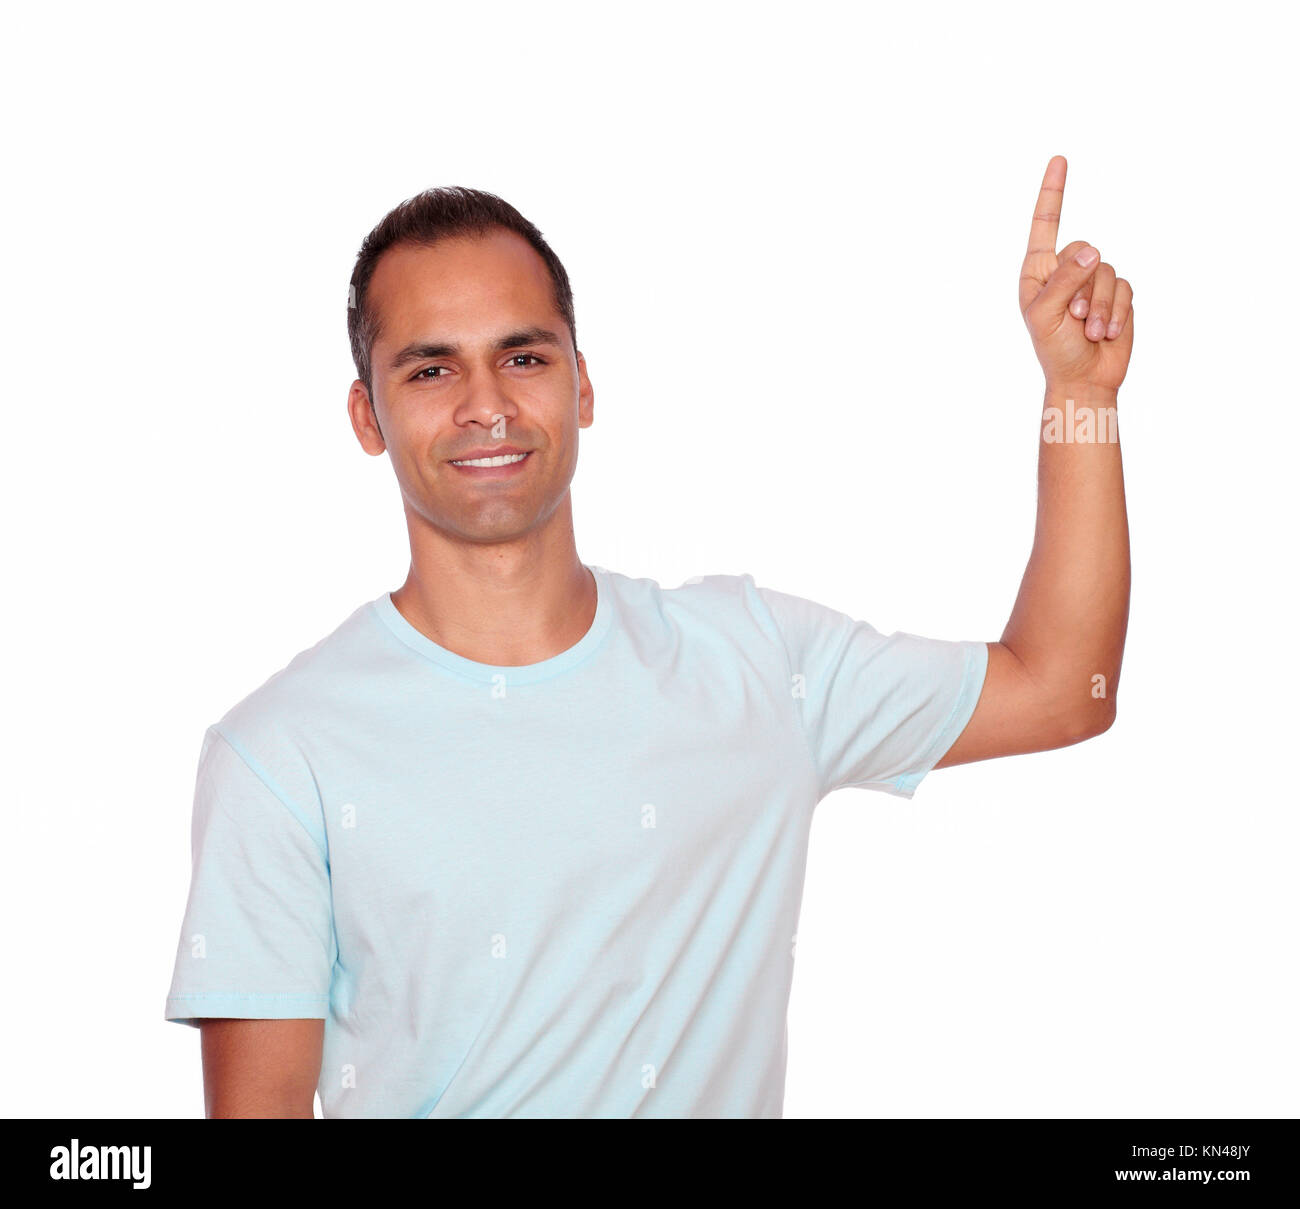 Portrait of an attractive young man on blue t-shirt pointing up on isolated background - copyspace. - Stock Image